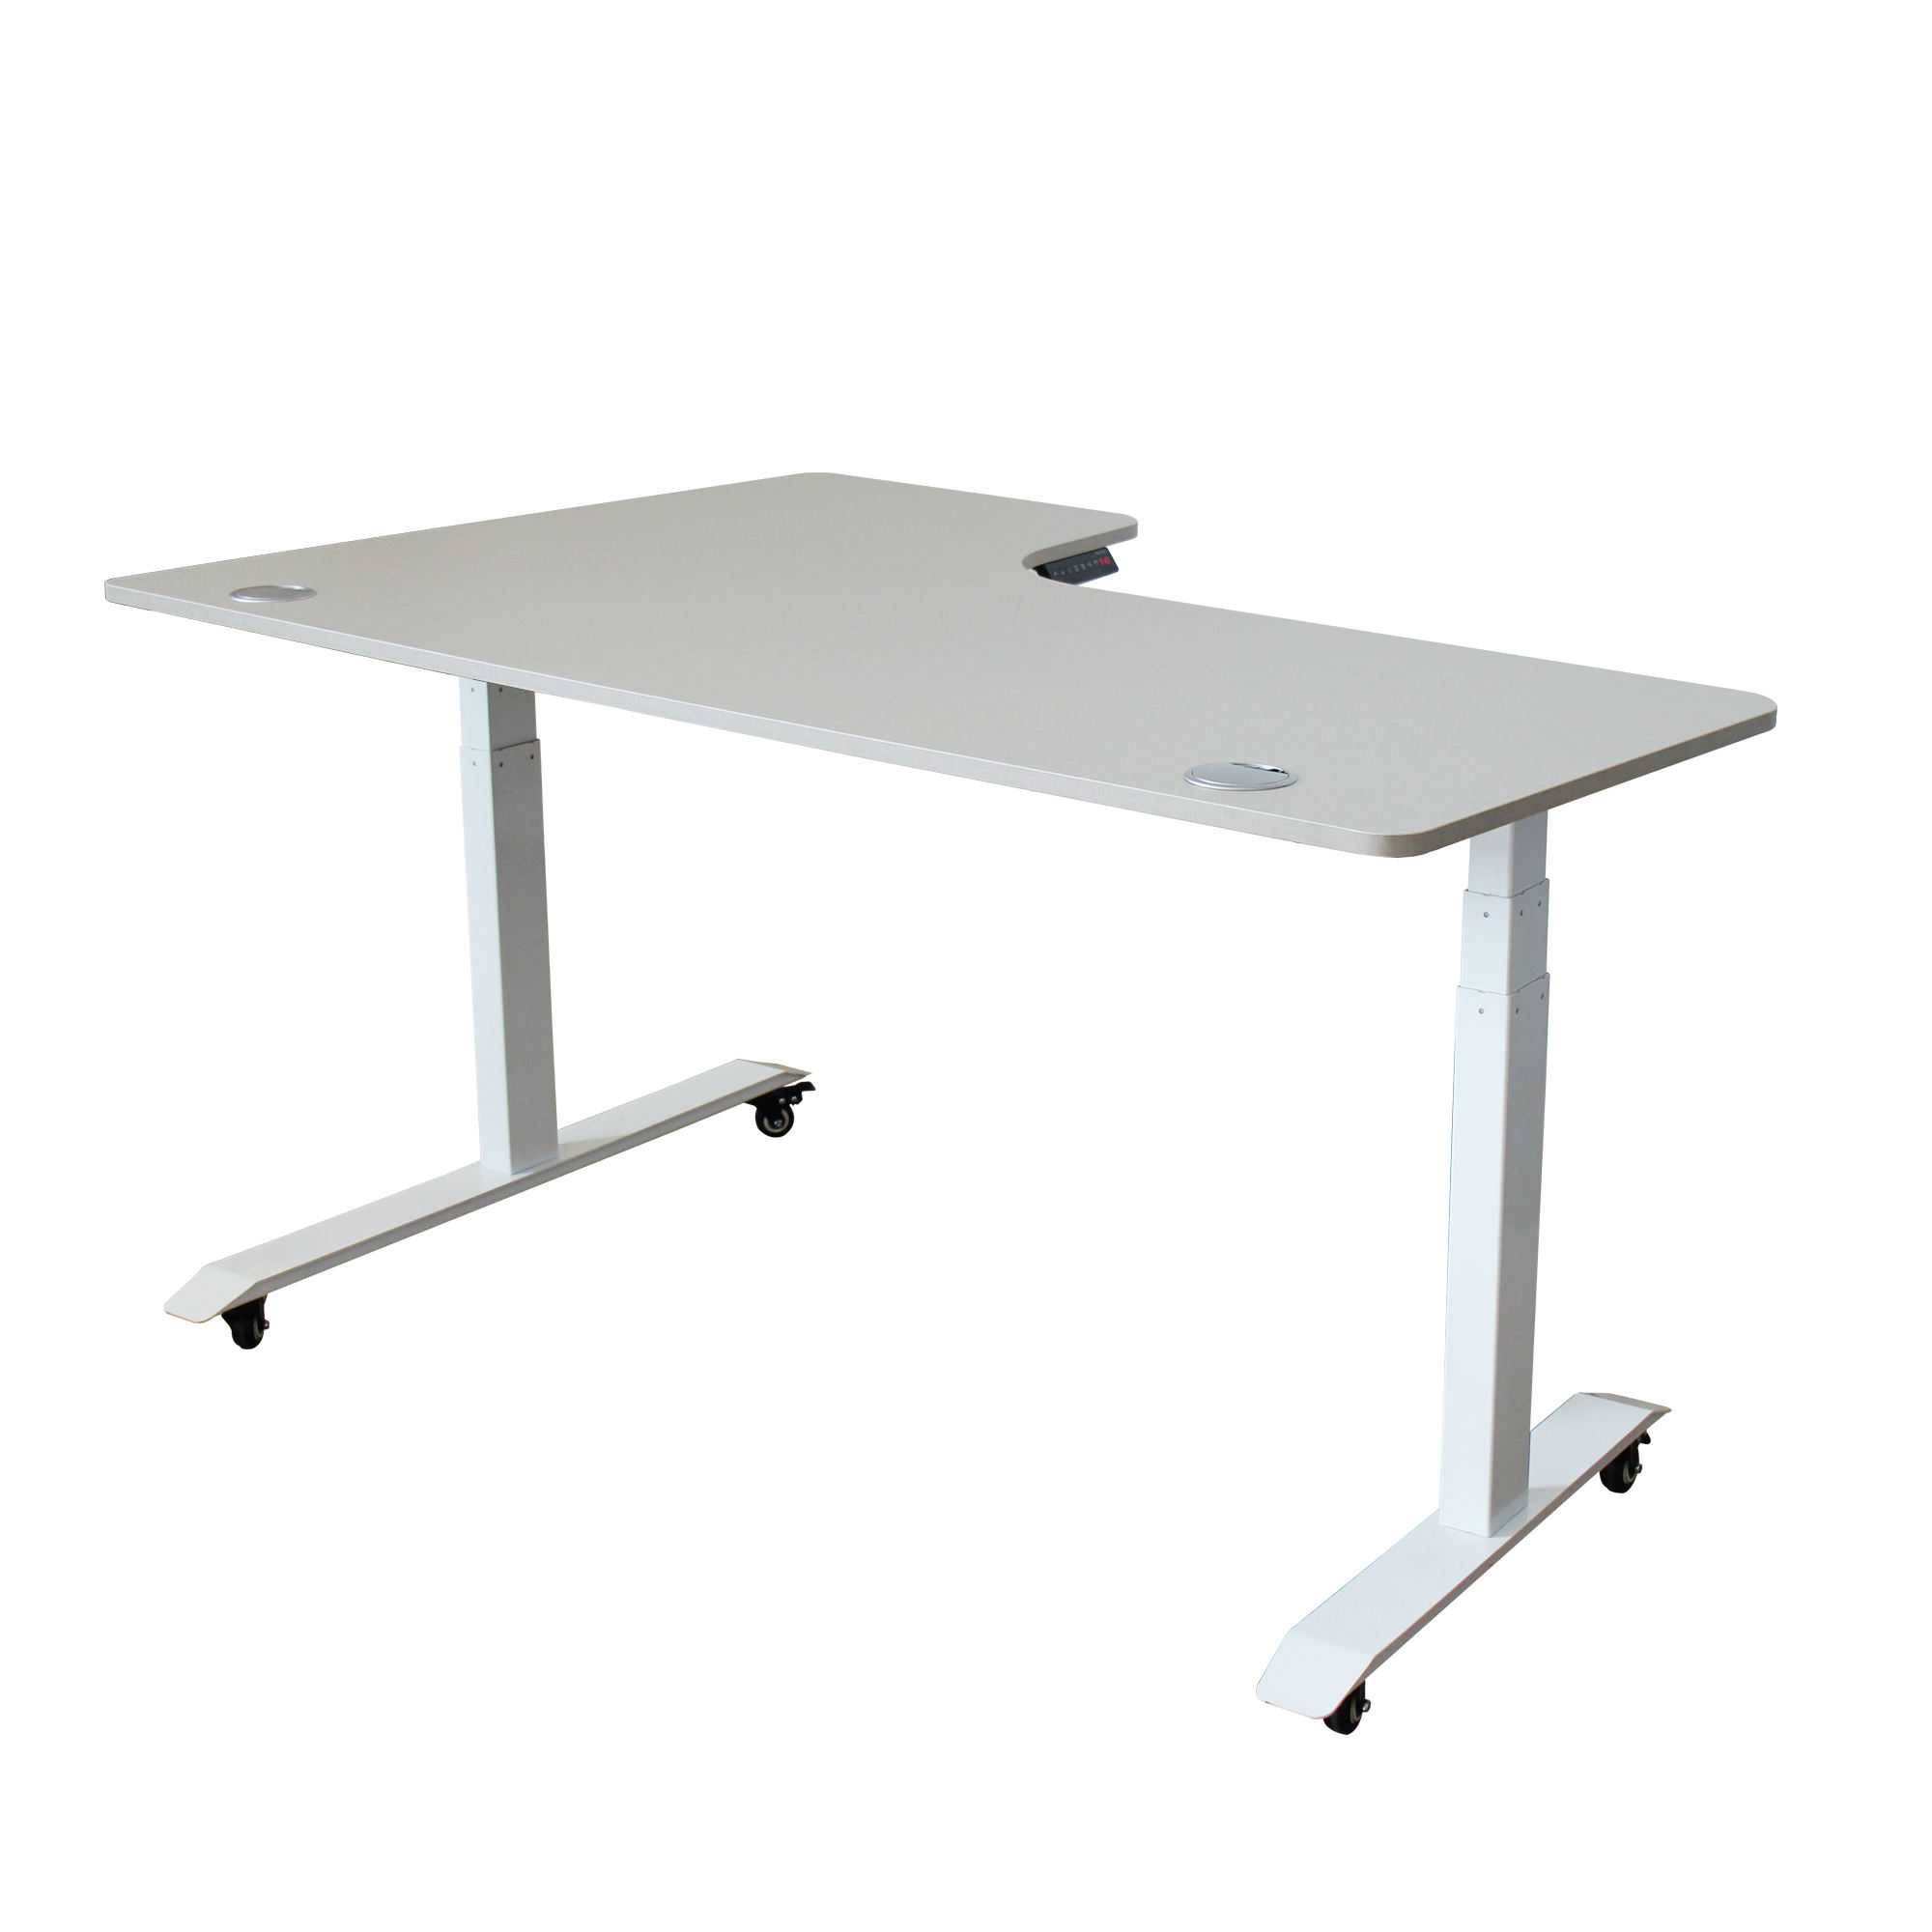 Office auto motorized desk height adjustable desk electric office standing desk